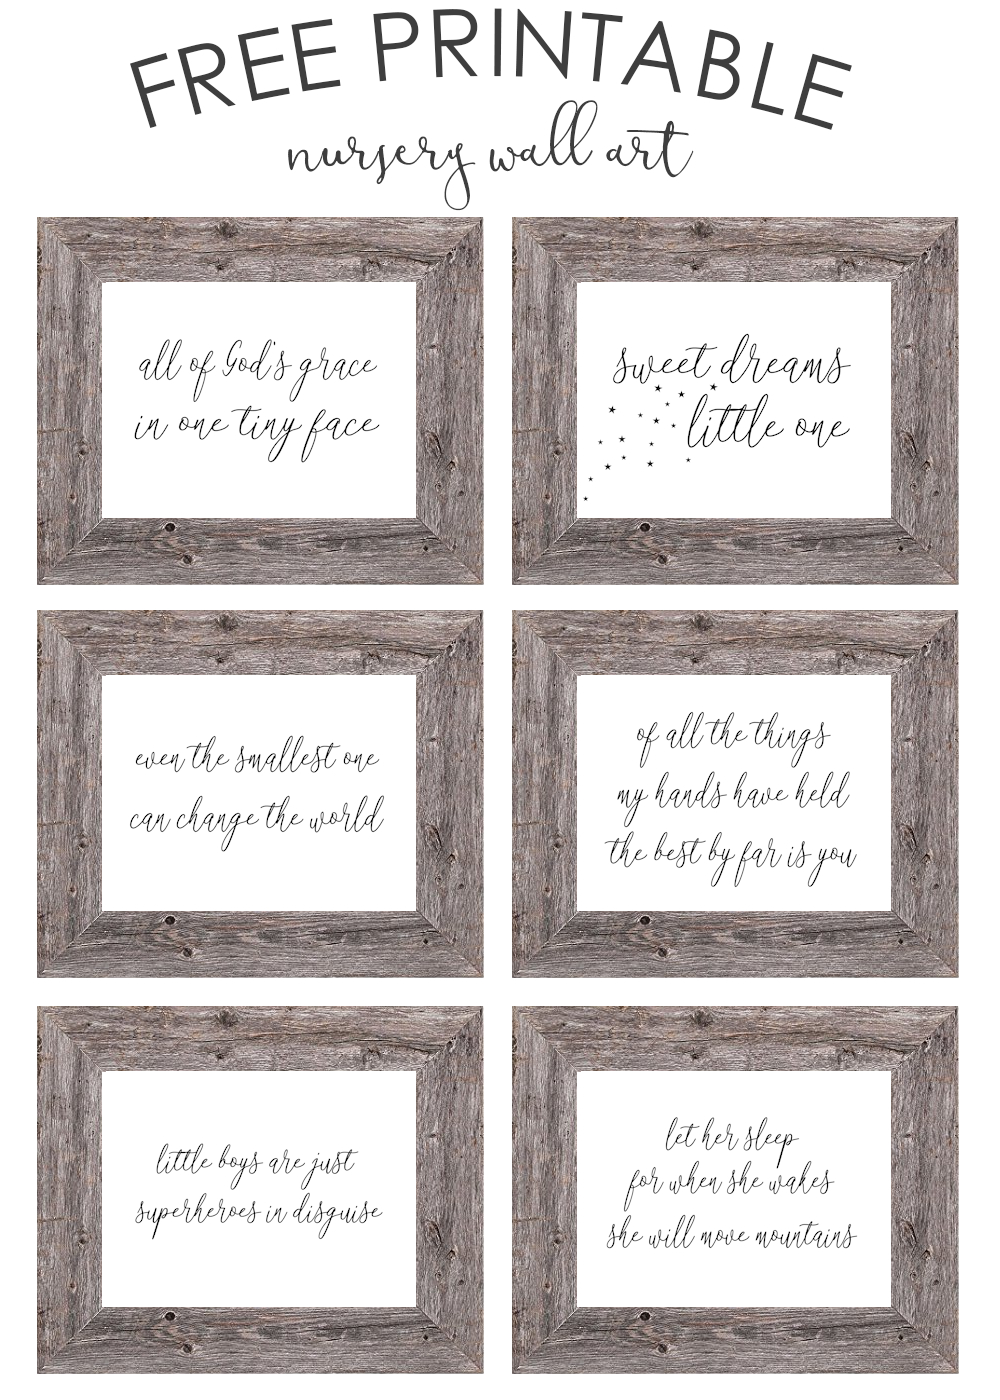 Free Printable Nursery Wall Art - The Girl Creative - Free Printable Wall Art Prints